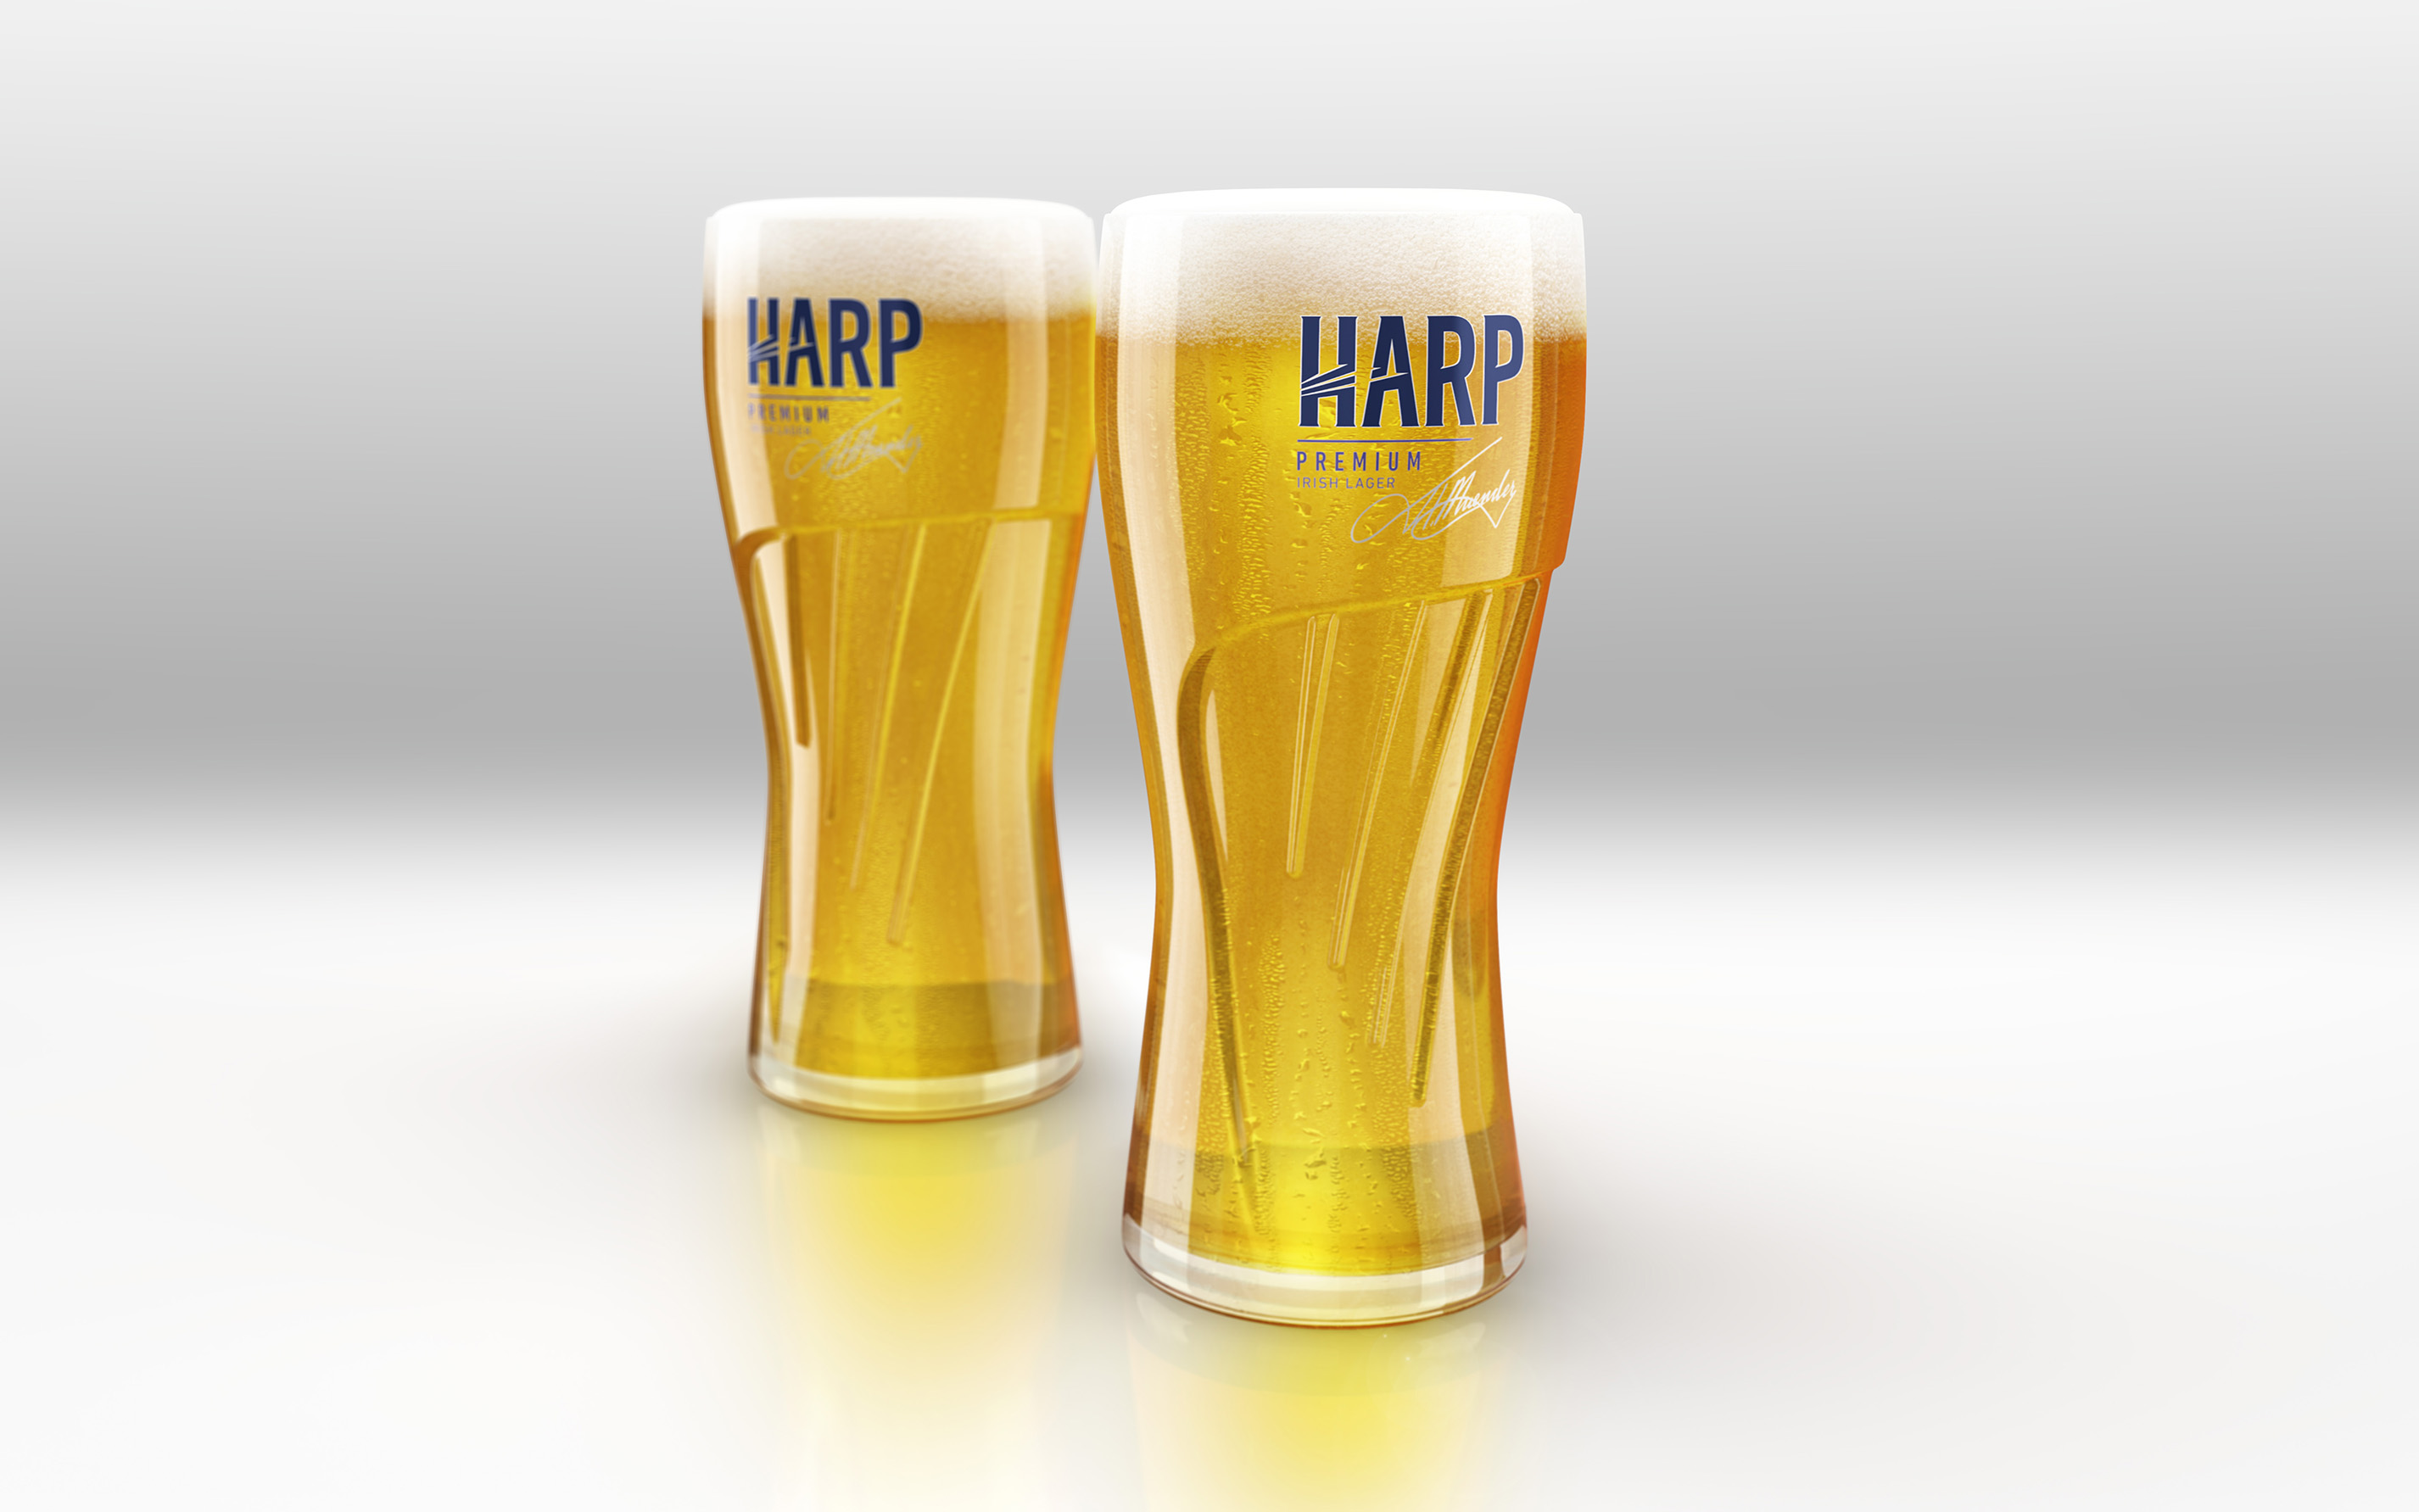 Pic.: Harp Lager's new look